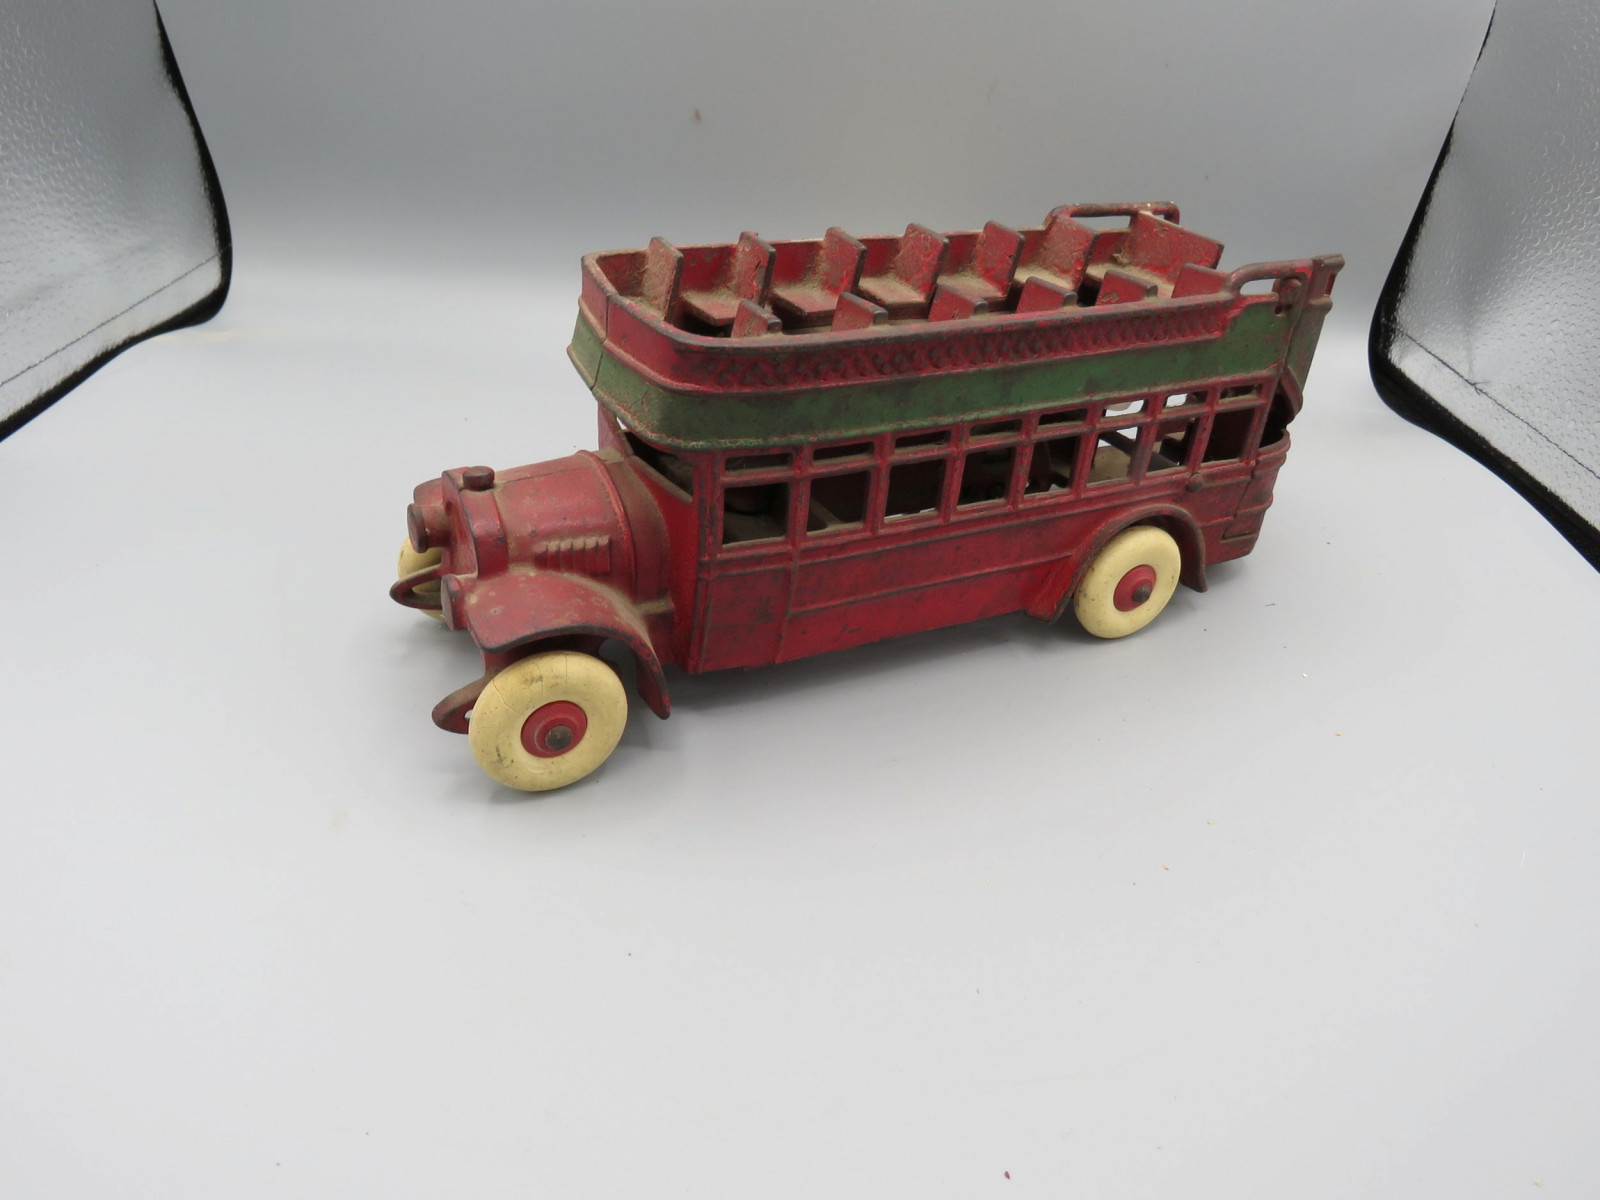 Arcade Double Decker Bus Cast Iron Approx. 10 inches - Image 2